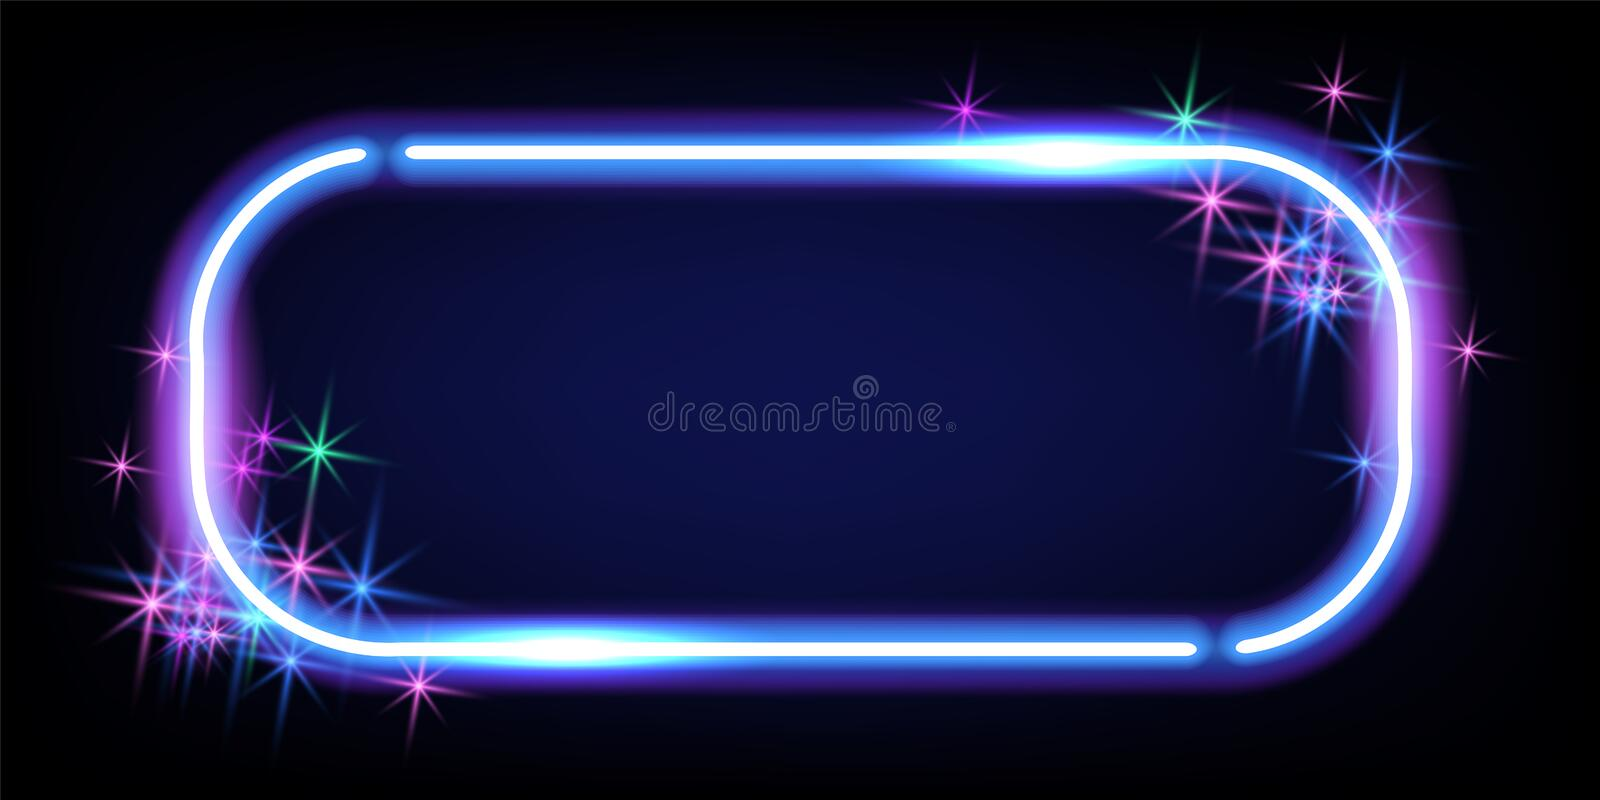 Fantastic background with neon rectangular frame, sparkle stars and space portal into another dimension royalty free stock photos